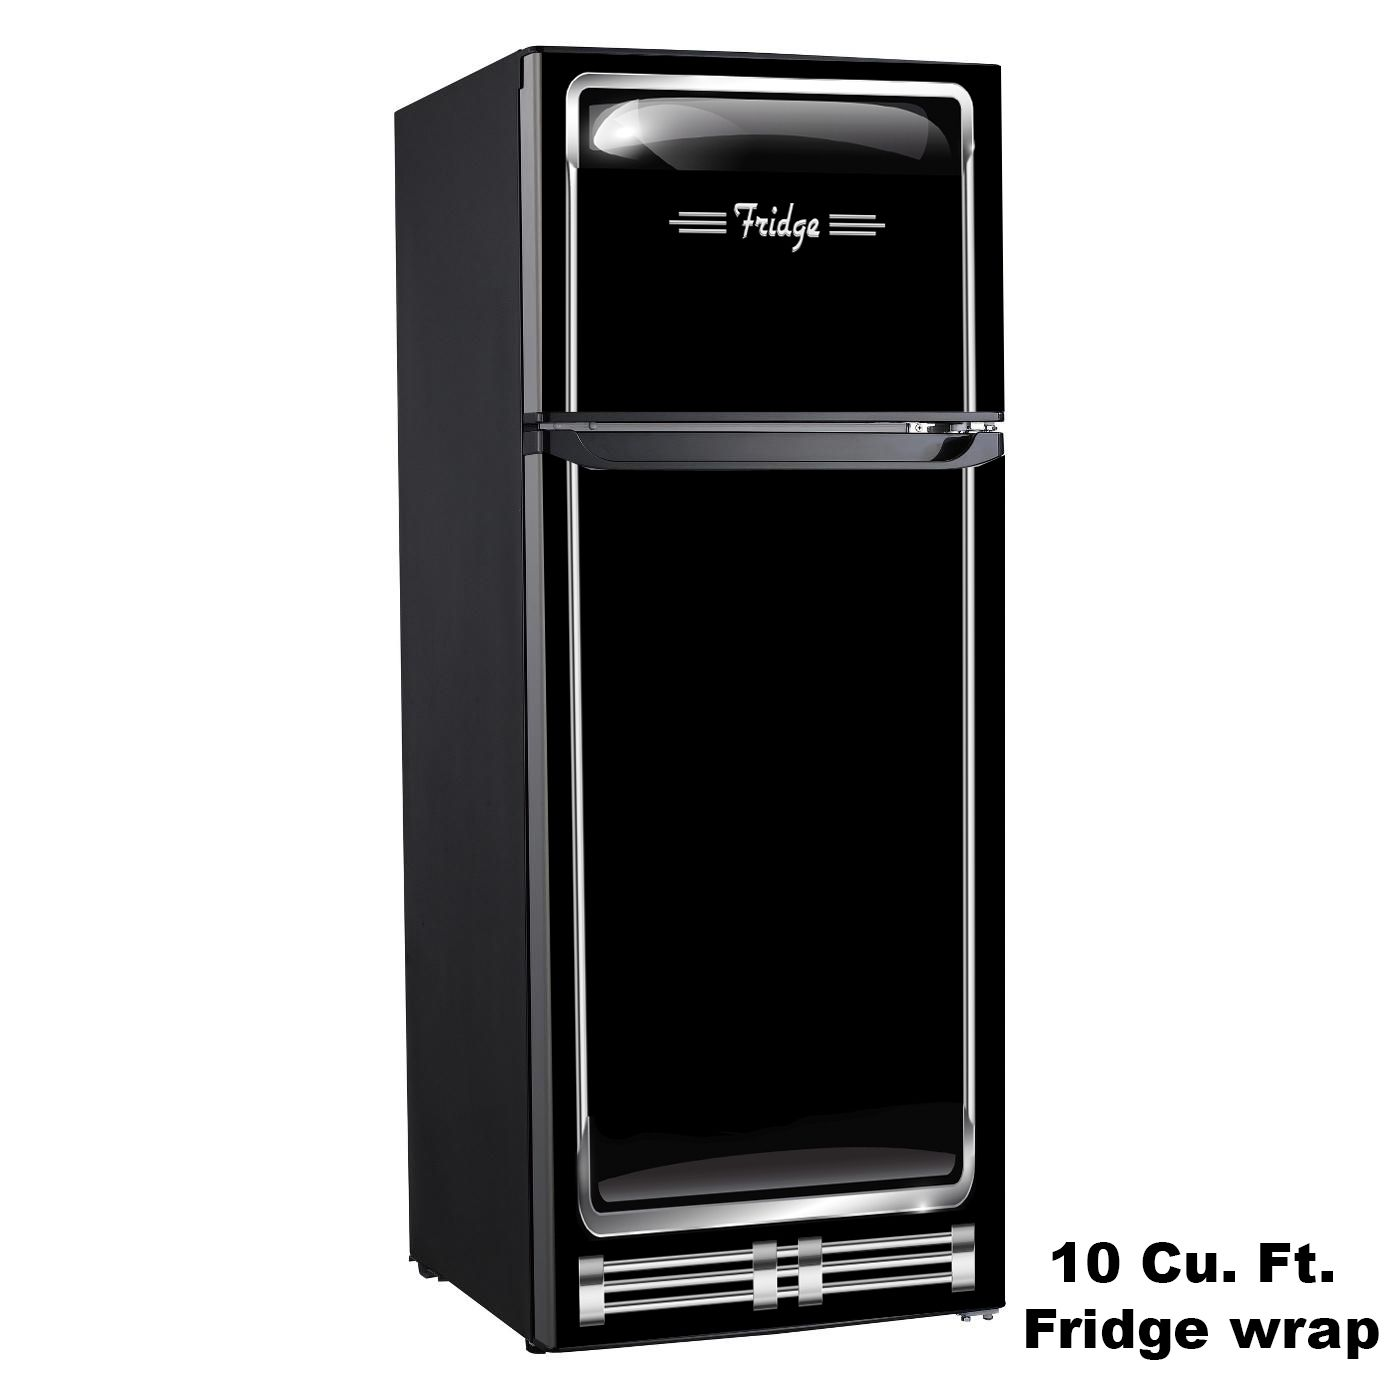 High To Low 10 Small Cool Apartment Sized Refrigerators Small Refrigerator Small Fridges Apartment Size Refrigerator